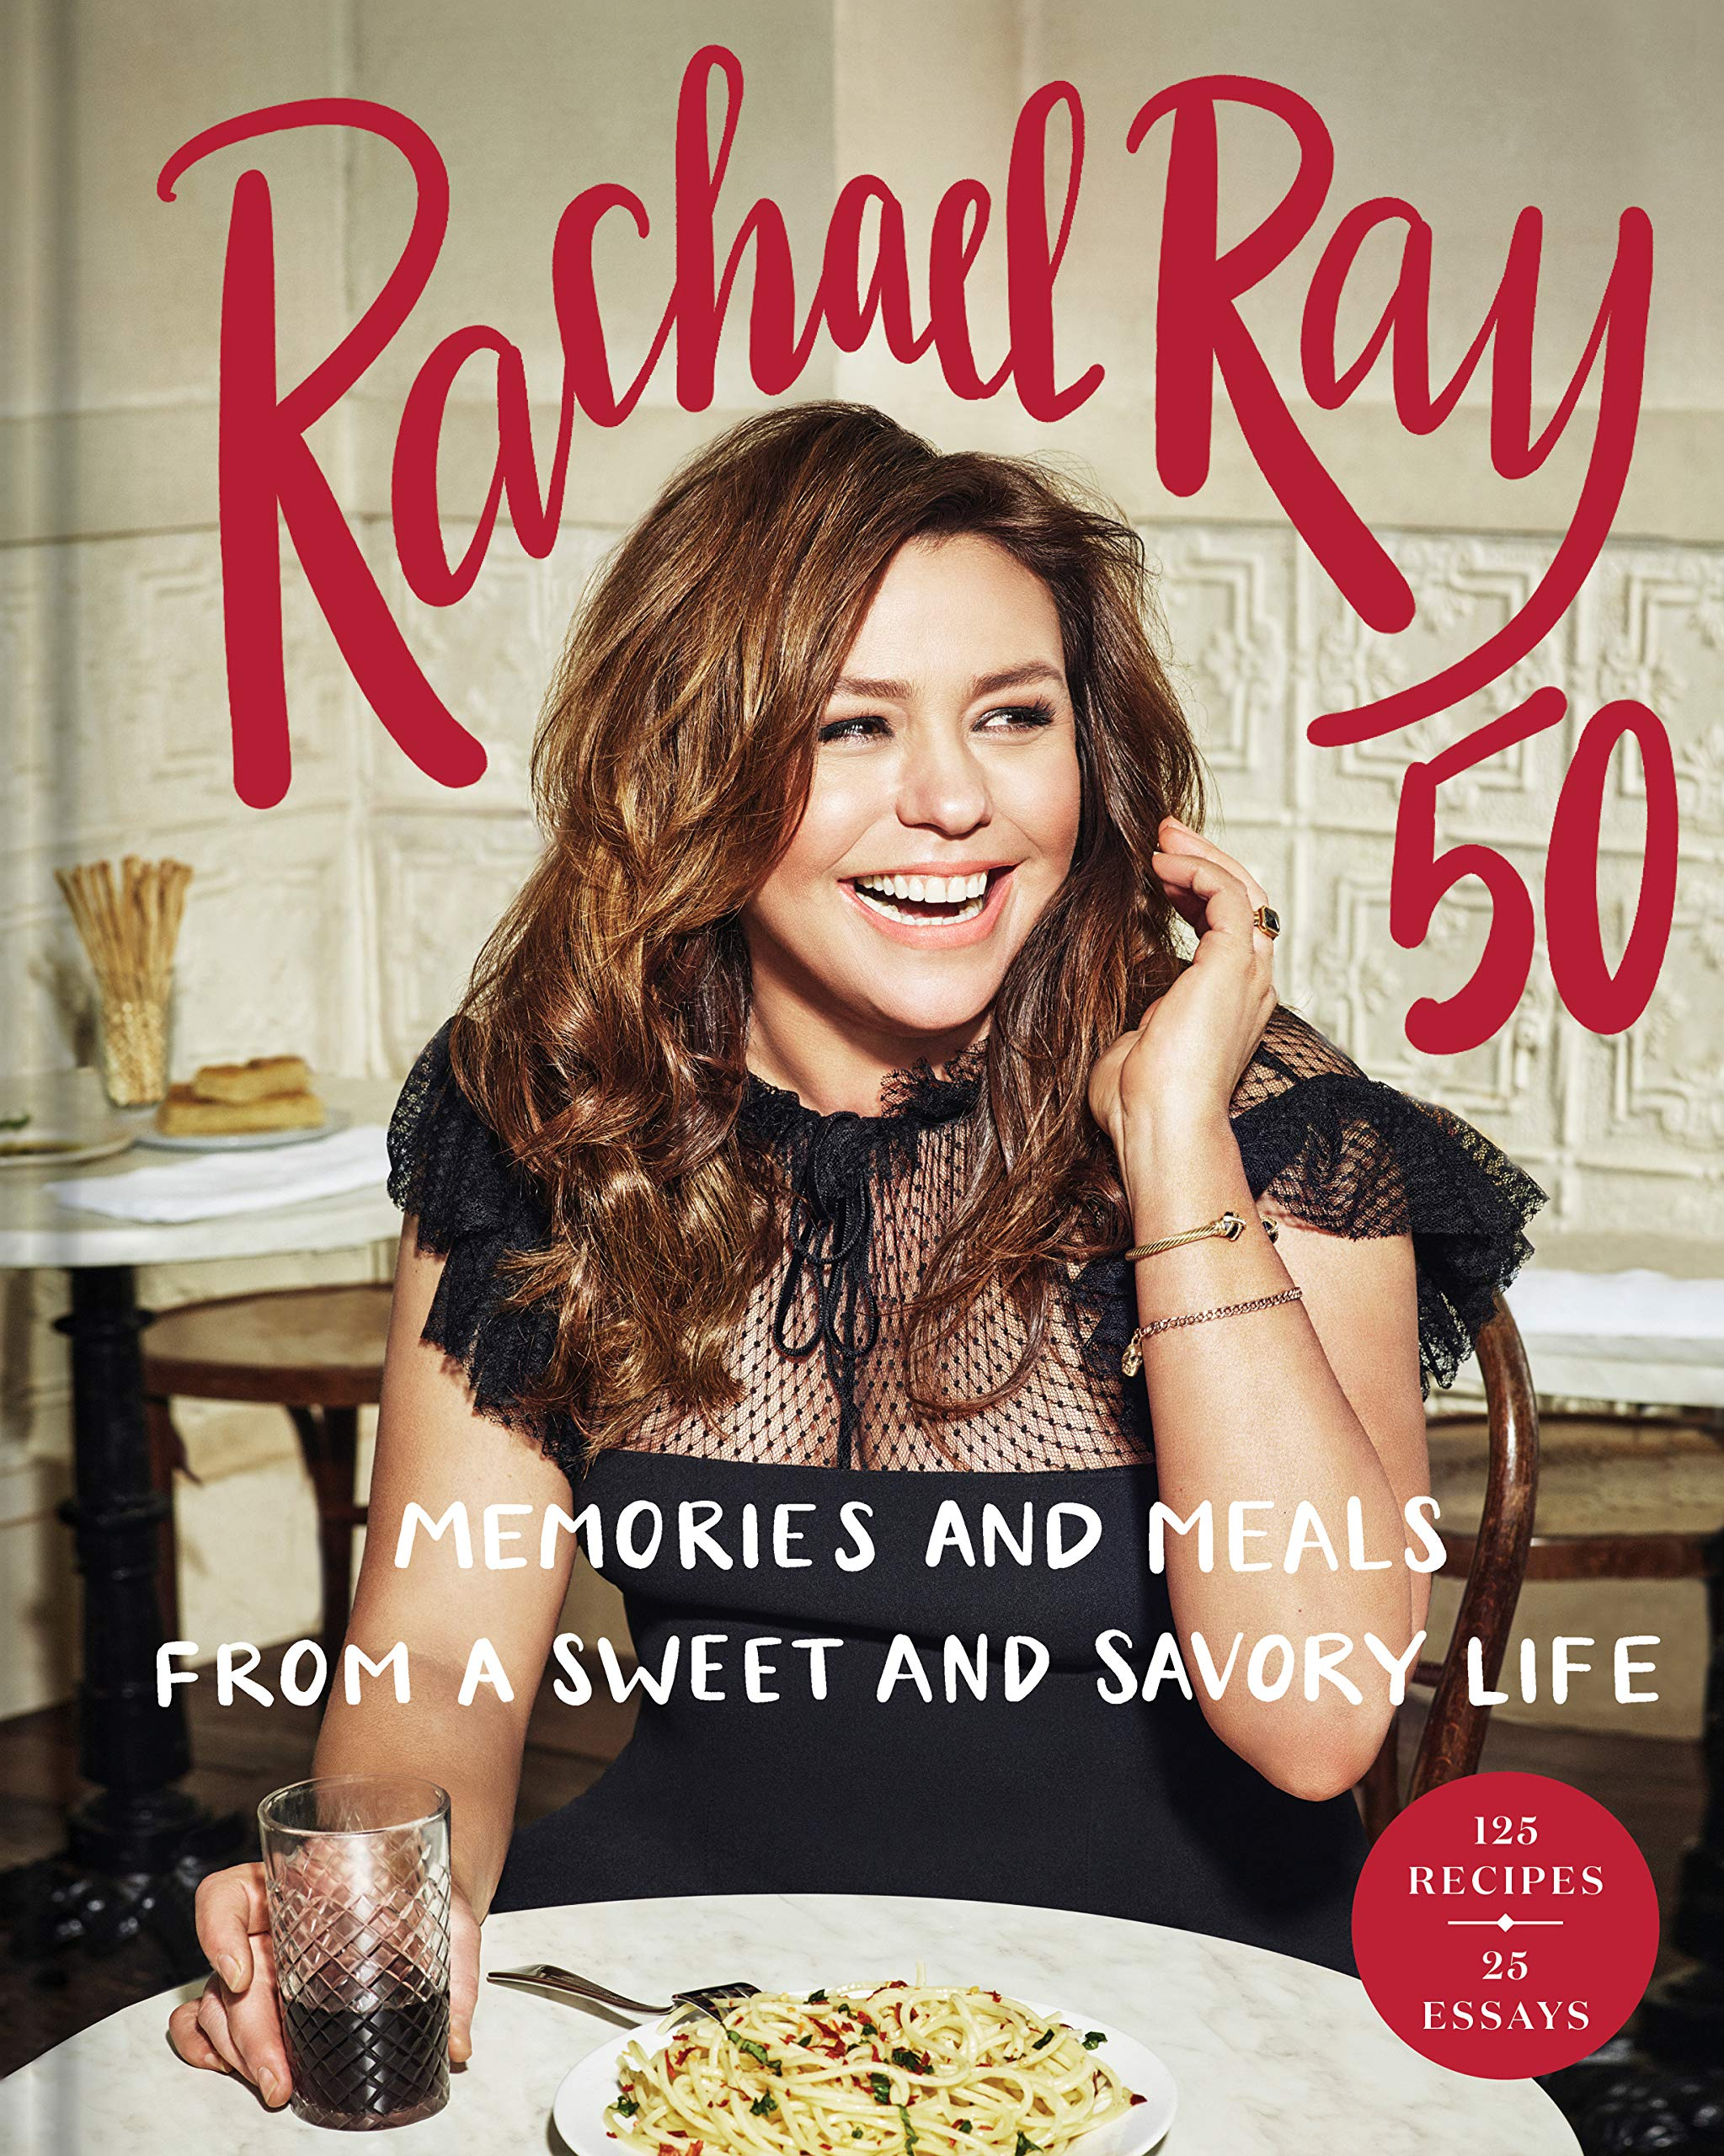 Rachael Ray 50: Memories and Meals from a Sweet and Savory Life: A Cookbook by Ballantine Books